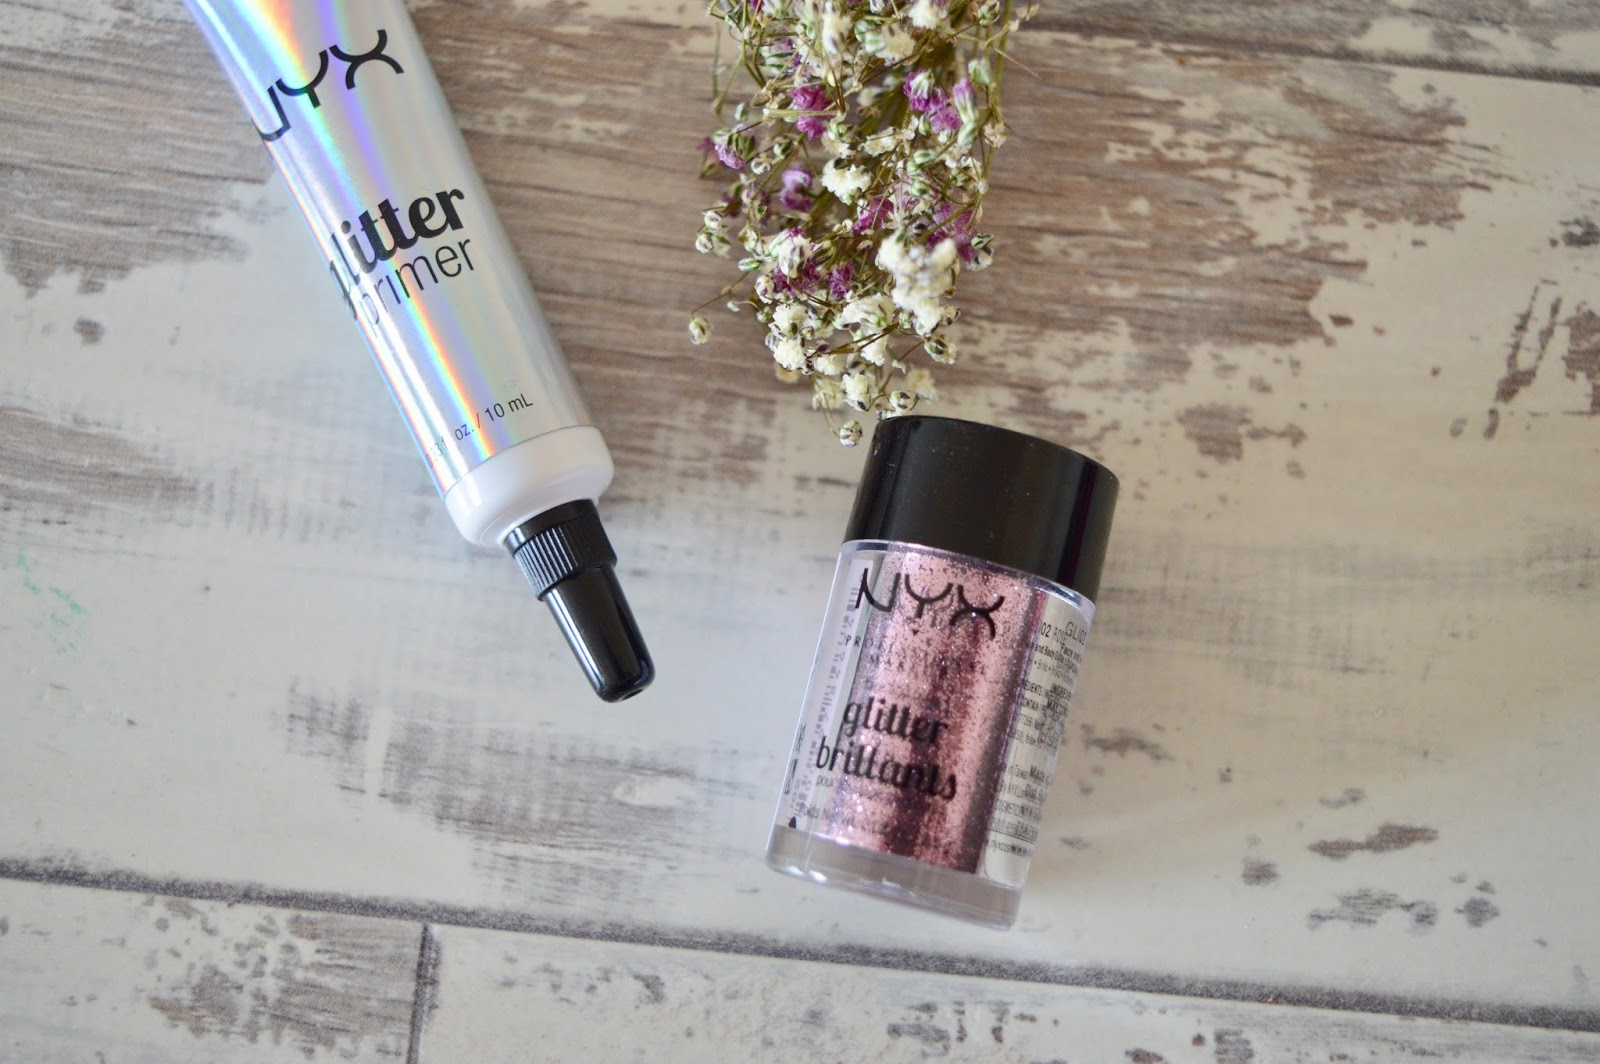 NYX Cosmetics Glitter primer review